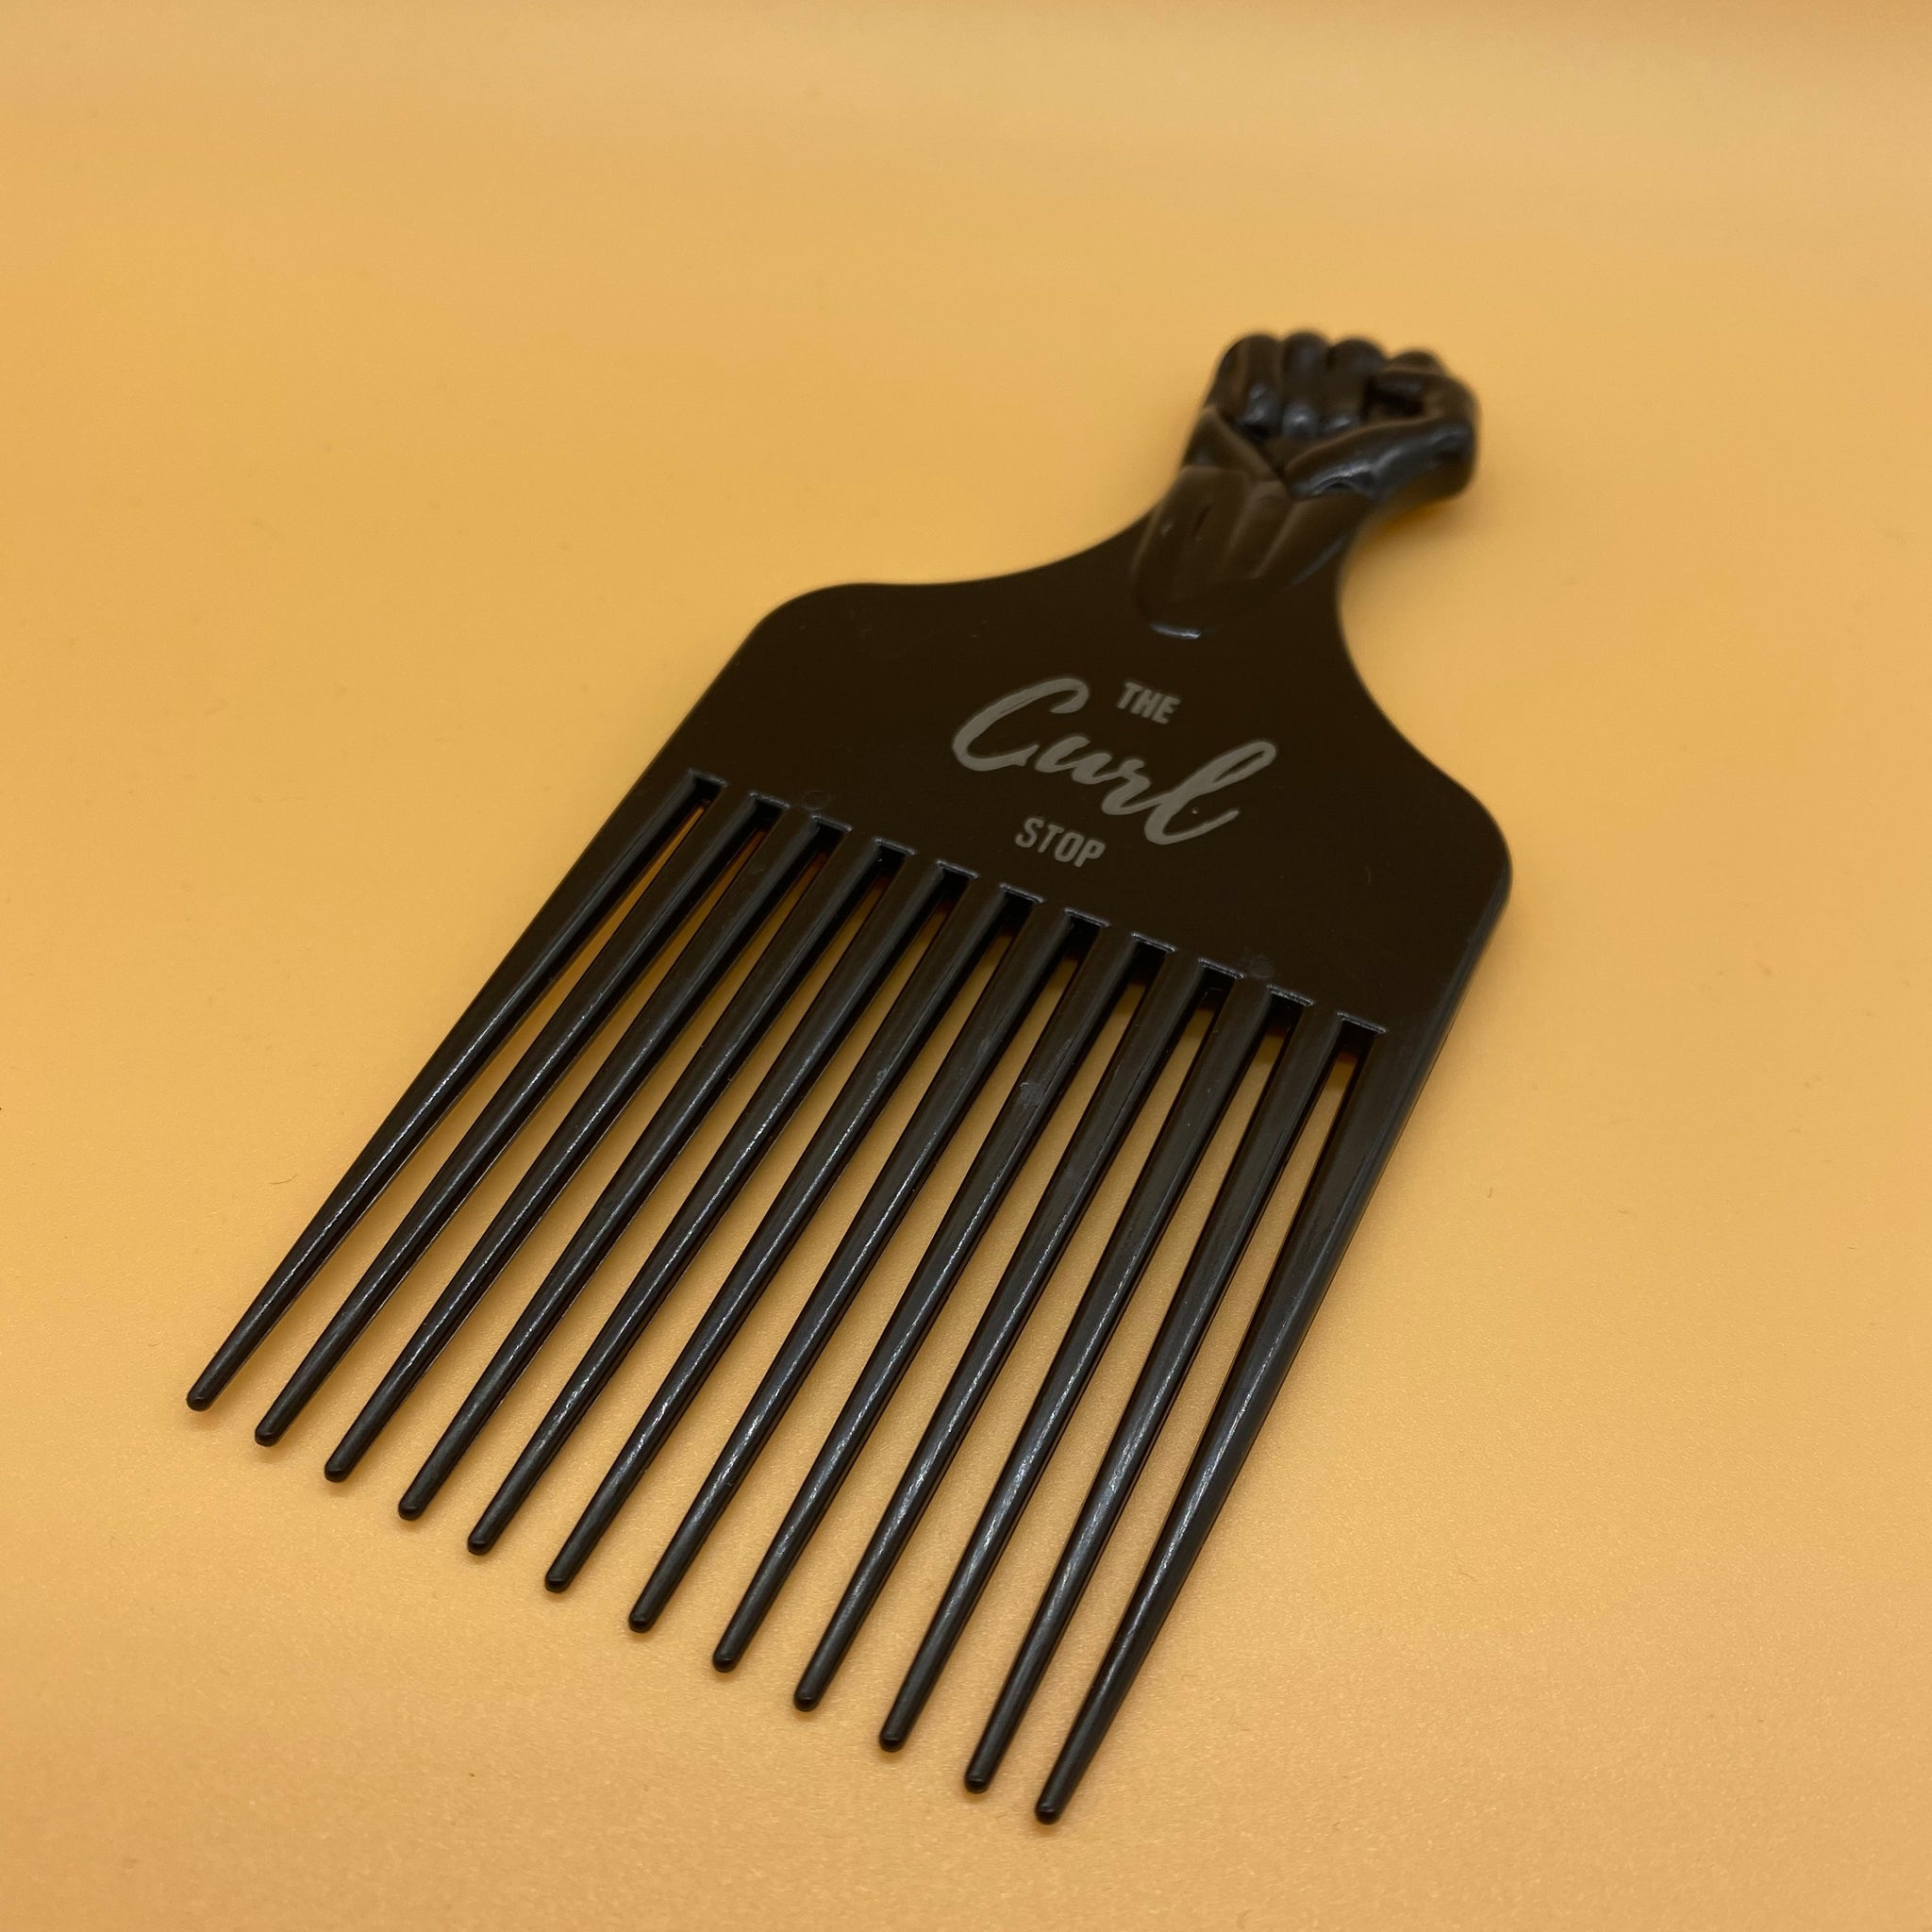 Justice Hair Pick Comb